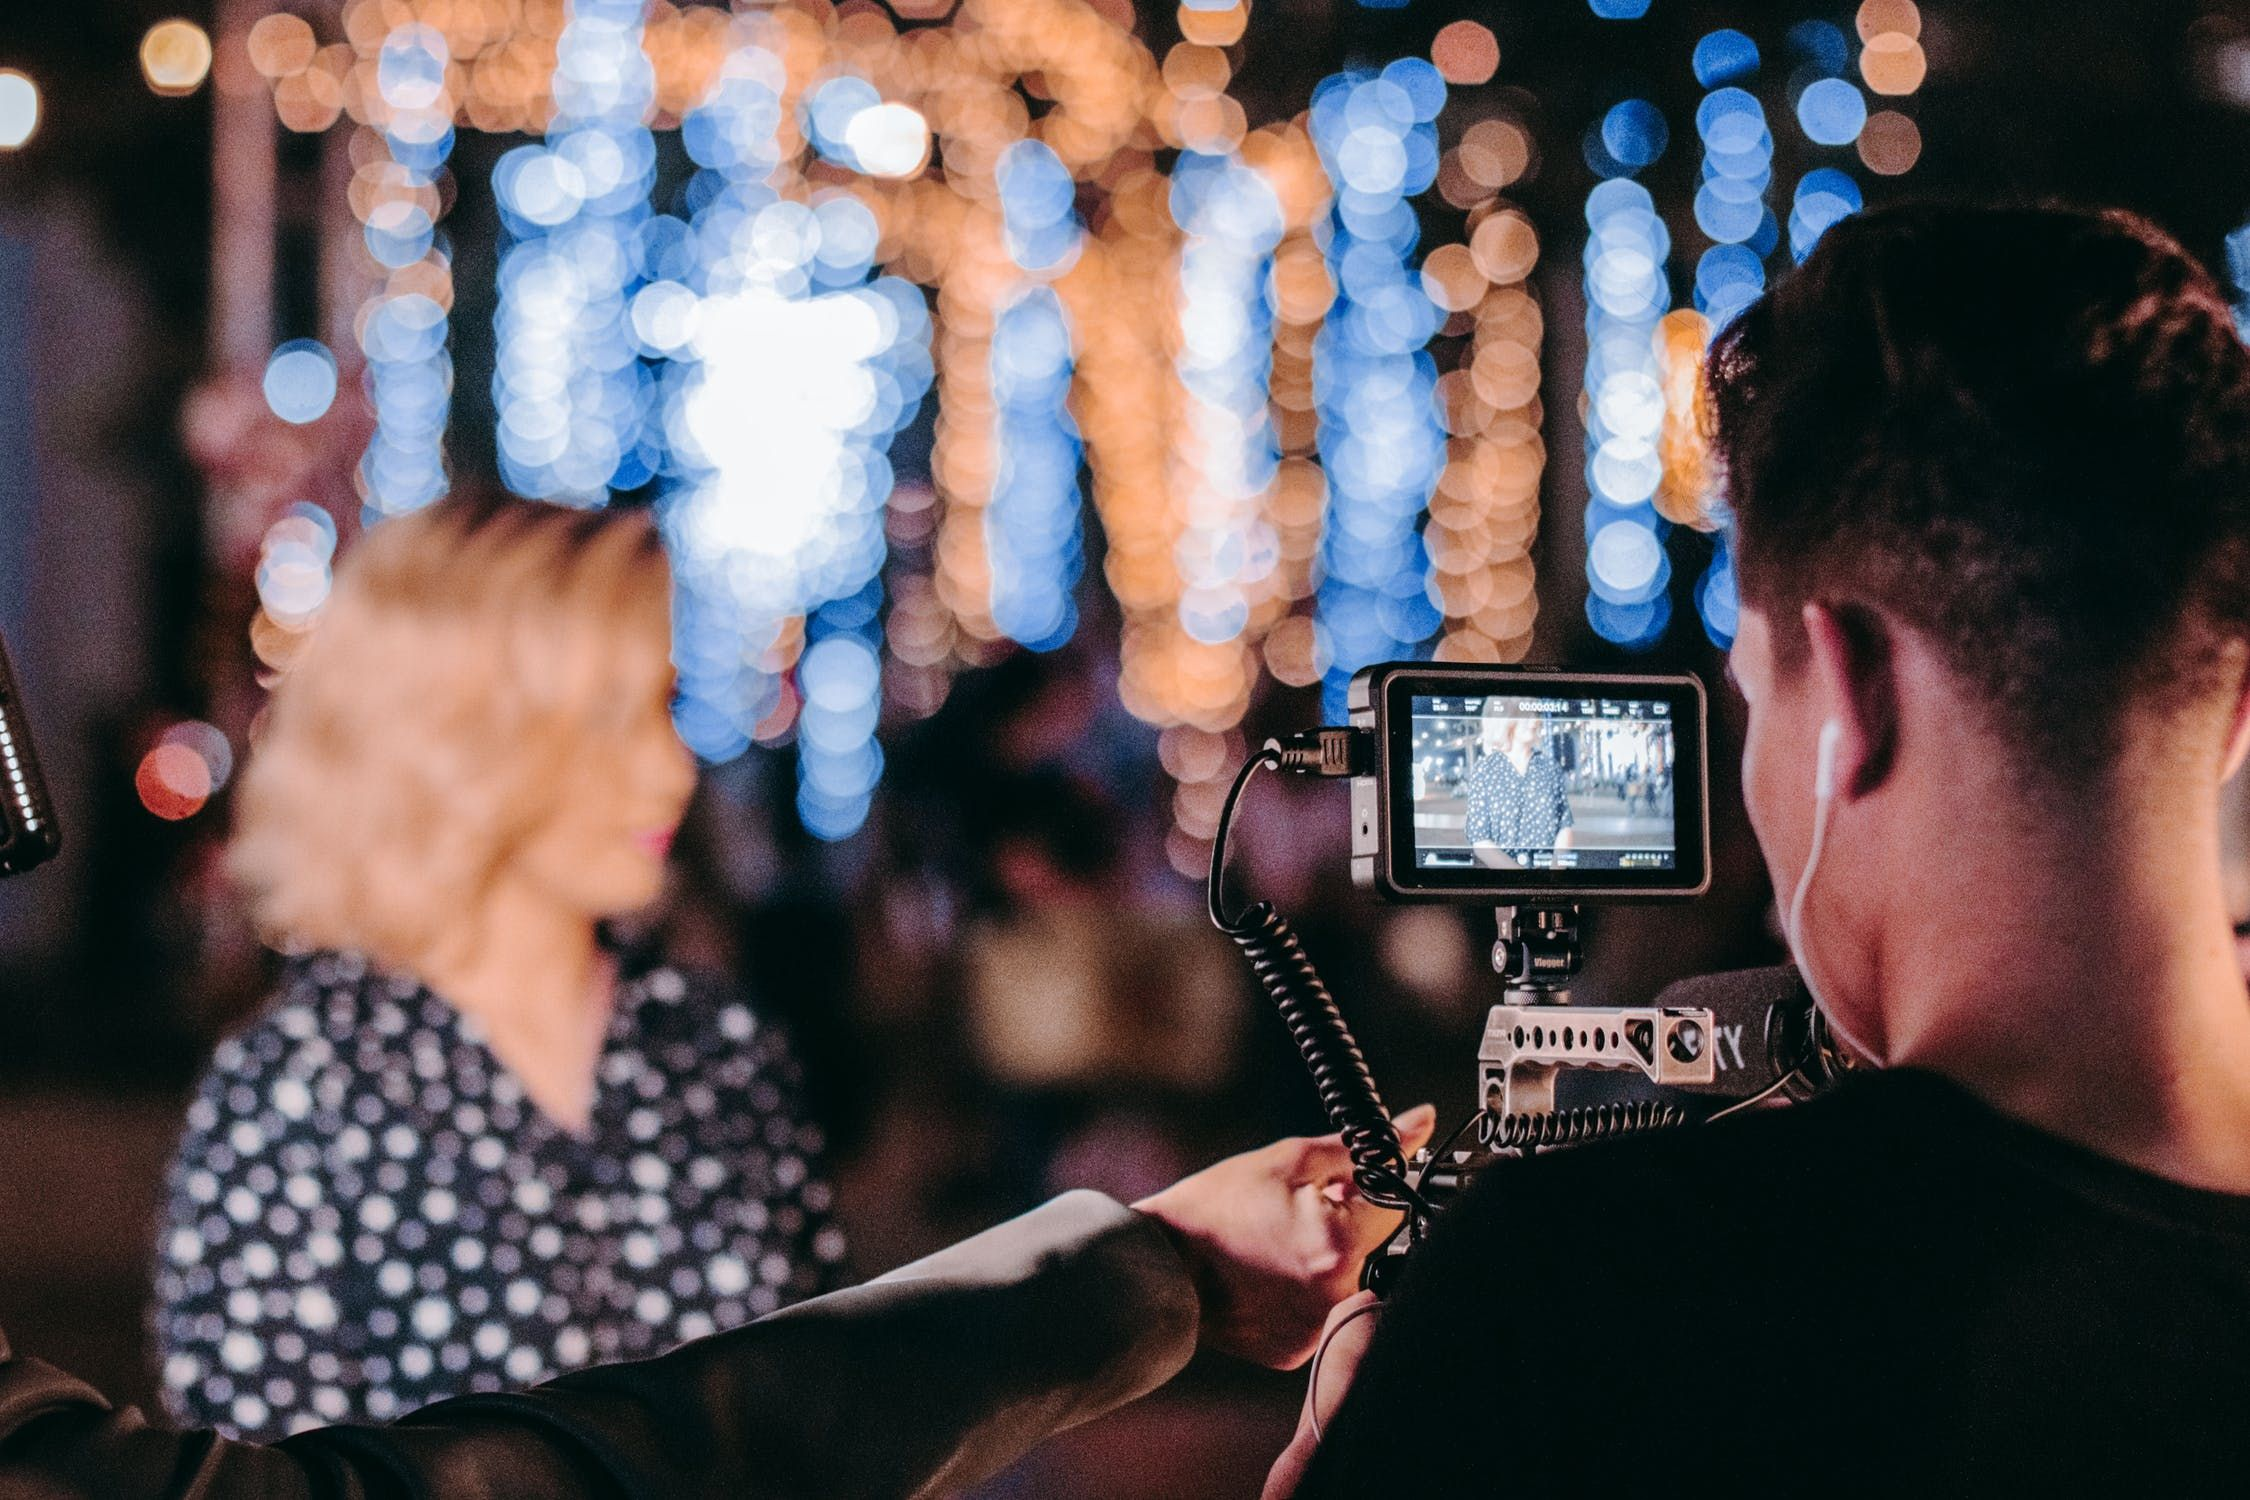 A blonde woman being filmed by a professional at a club